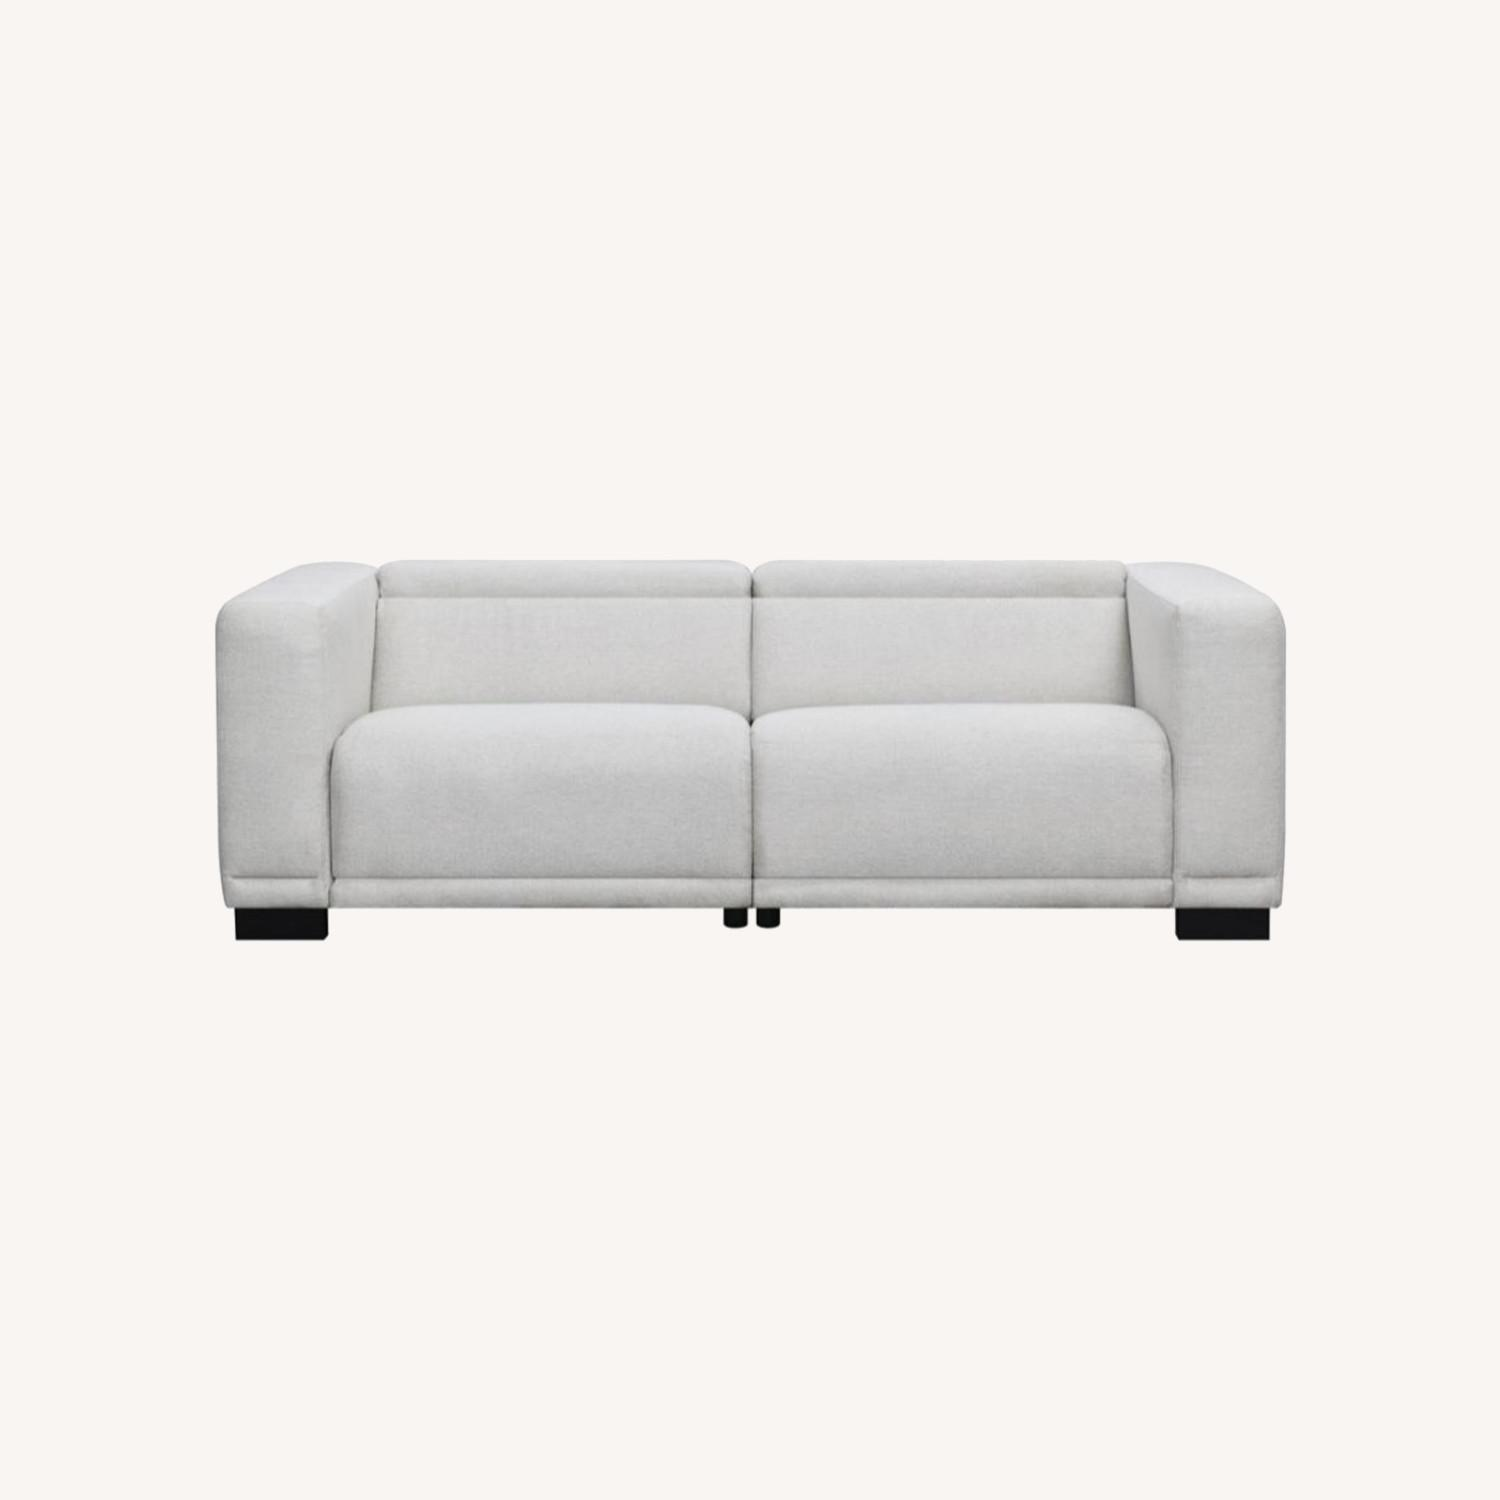 Power Recliner Sofa In Beige Performance Chenille - image-7